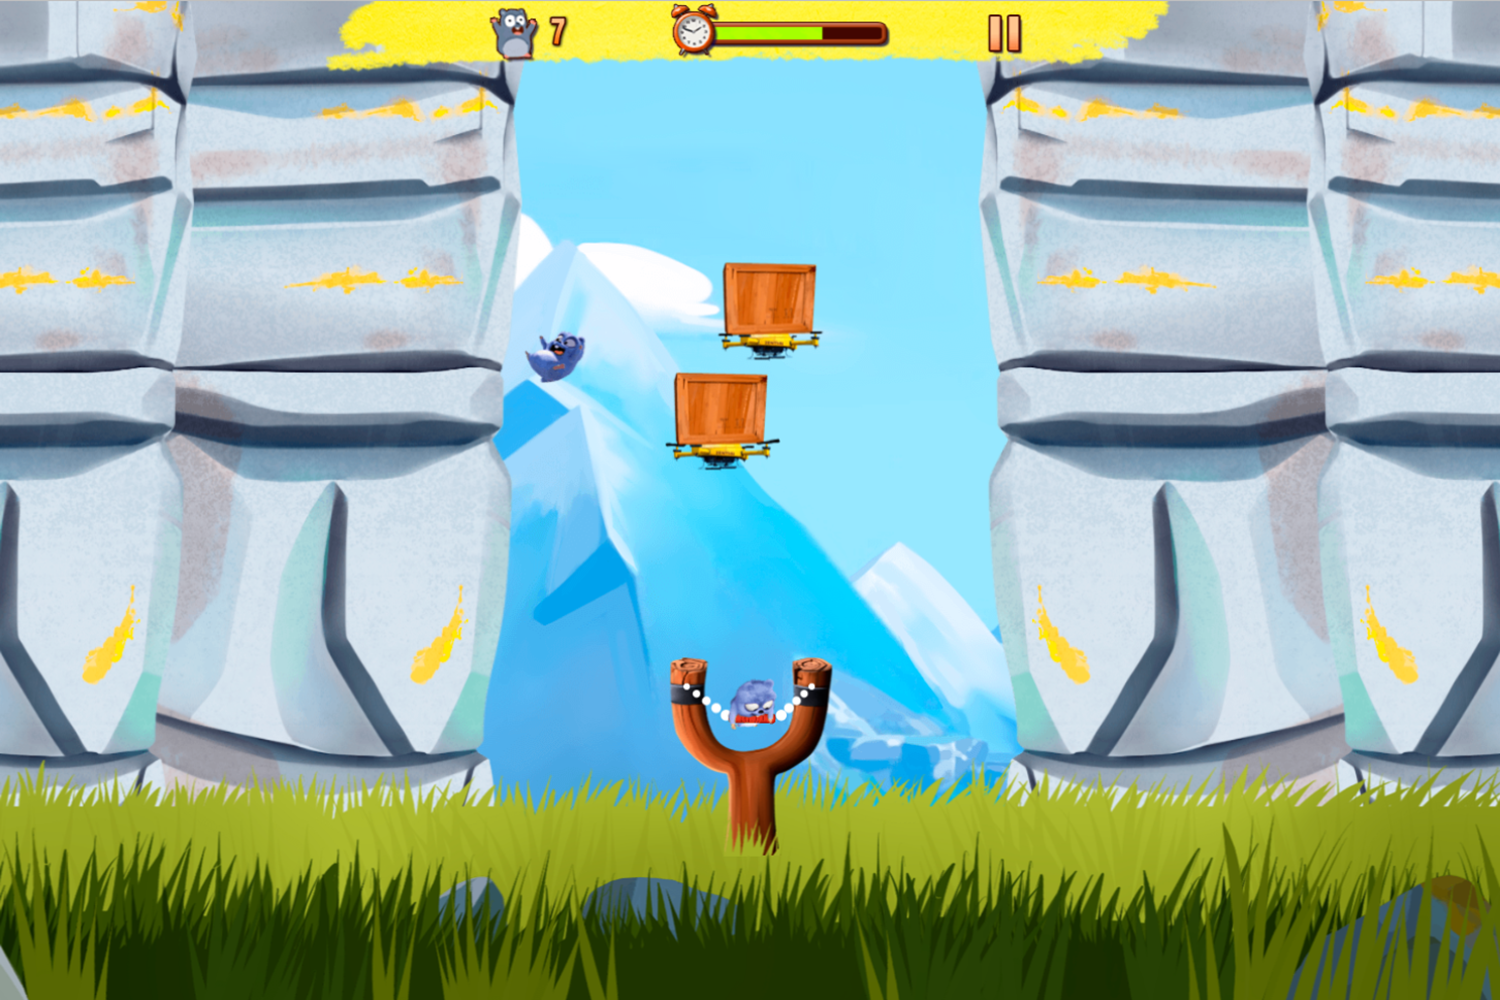 Grizzy and the Lemmings Lemmings Sling Game Play Screenshot.